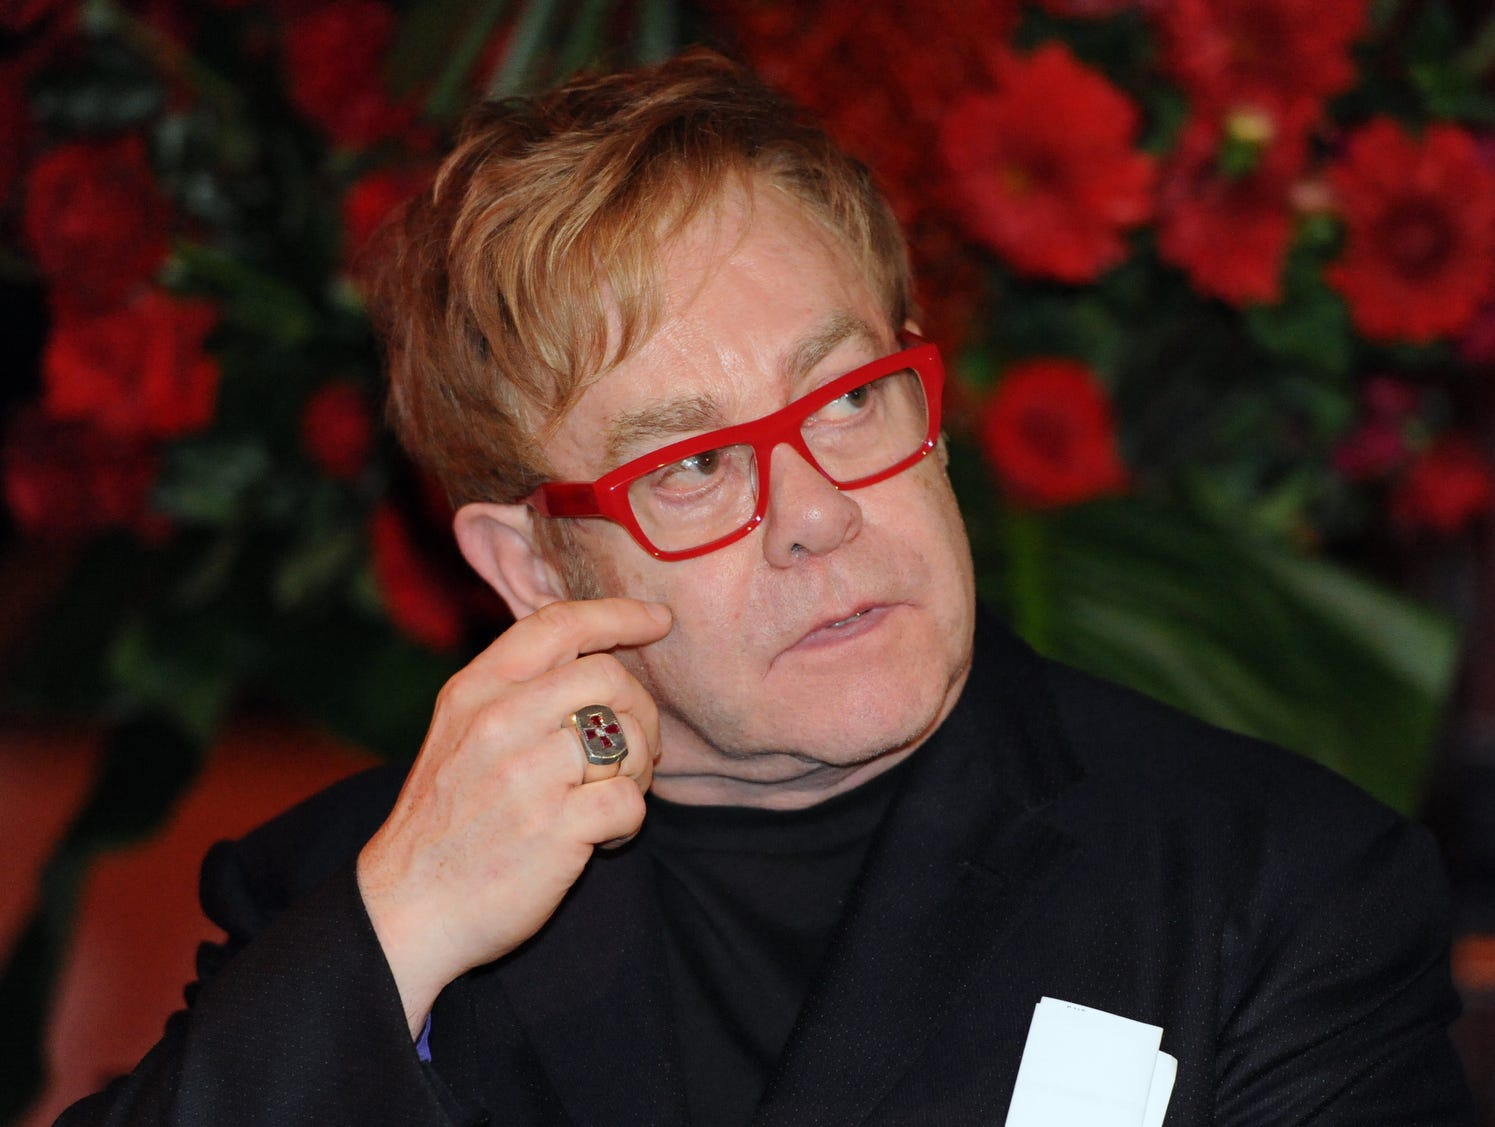 British singer songwriter Sir Elton John attends the World AIDS Day event in Sydney on Dec.1, 2011. He has a foundation and continues to hold benefits to raise money for the cure.